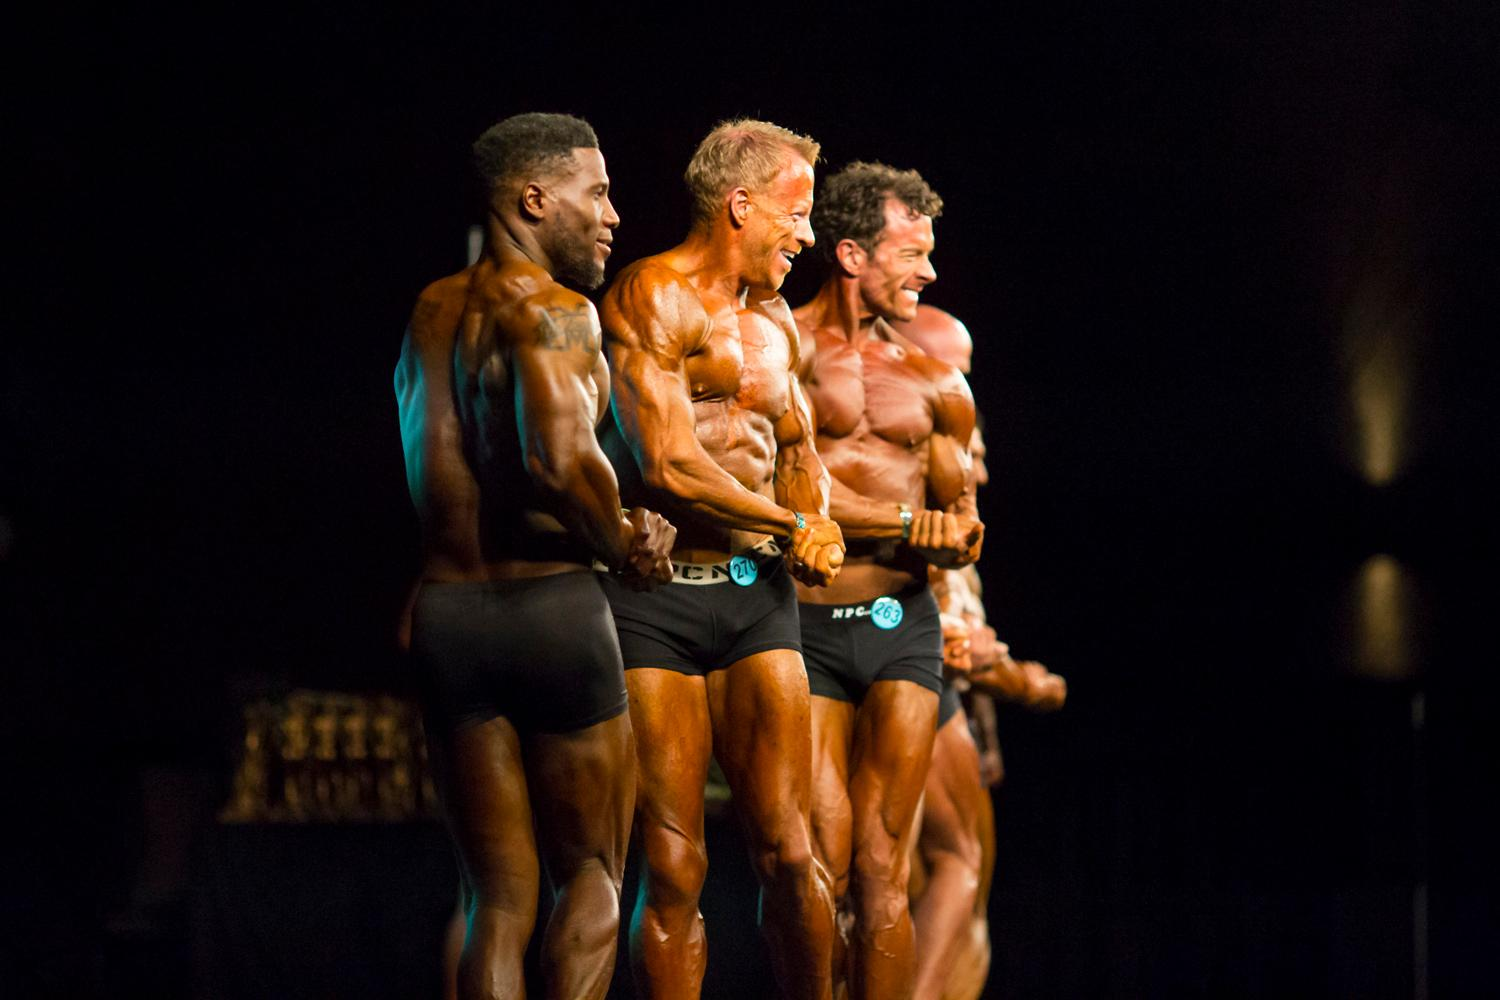 <p>The 2018 NPC Emerald Cup Championships and Fitness Expo is one of the premiere events of its kind in the Northwest. Hundreds of competitors and spectators come to the Meydenbauer Convention Center in Bellevue, WA each year to compete, and watch. (Image: Sy Bean / Seattle Refined)</p>